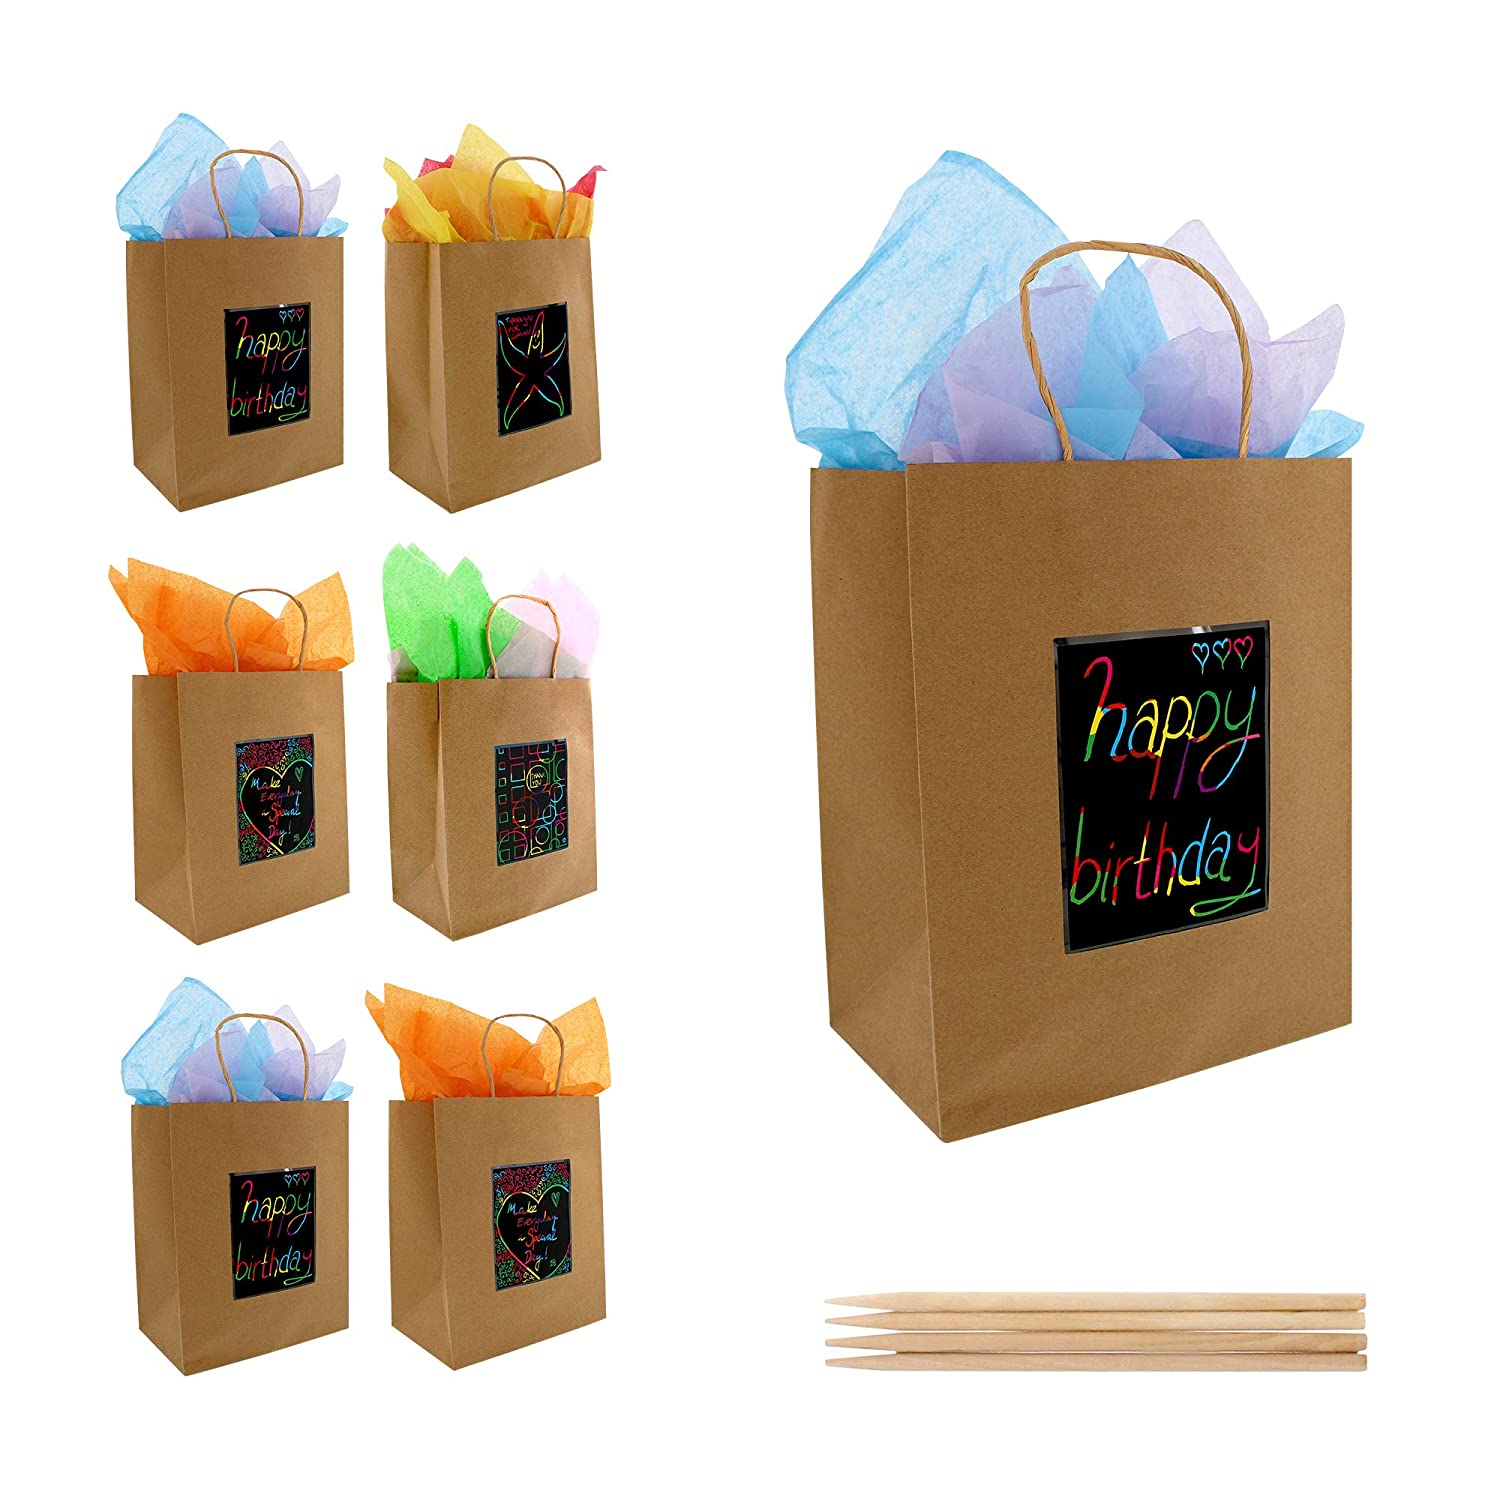 7 Brown Kraft Paper Gift Bags with Scratch Paper Panel for Customization, Tissue Paper...